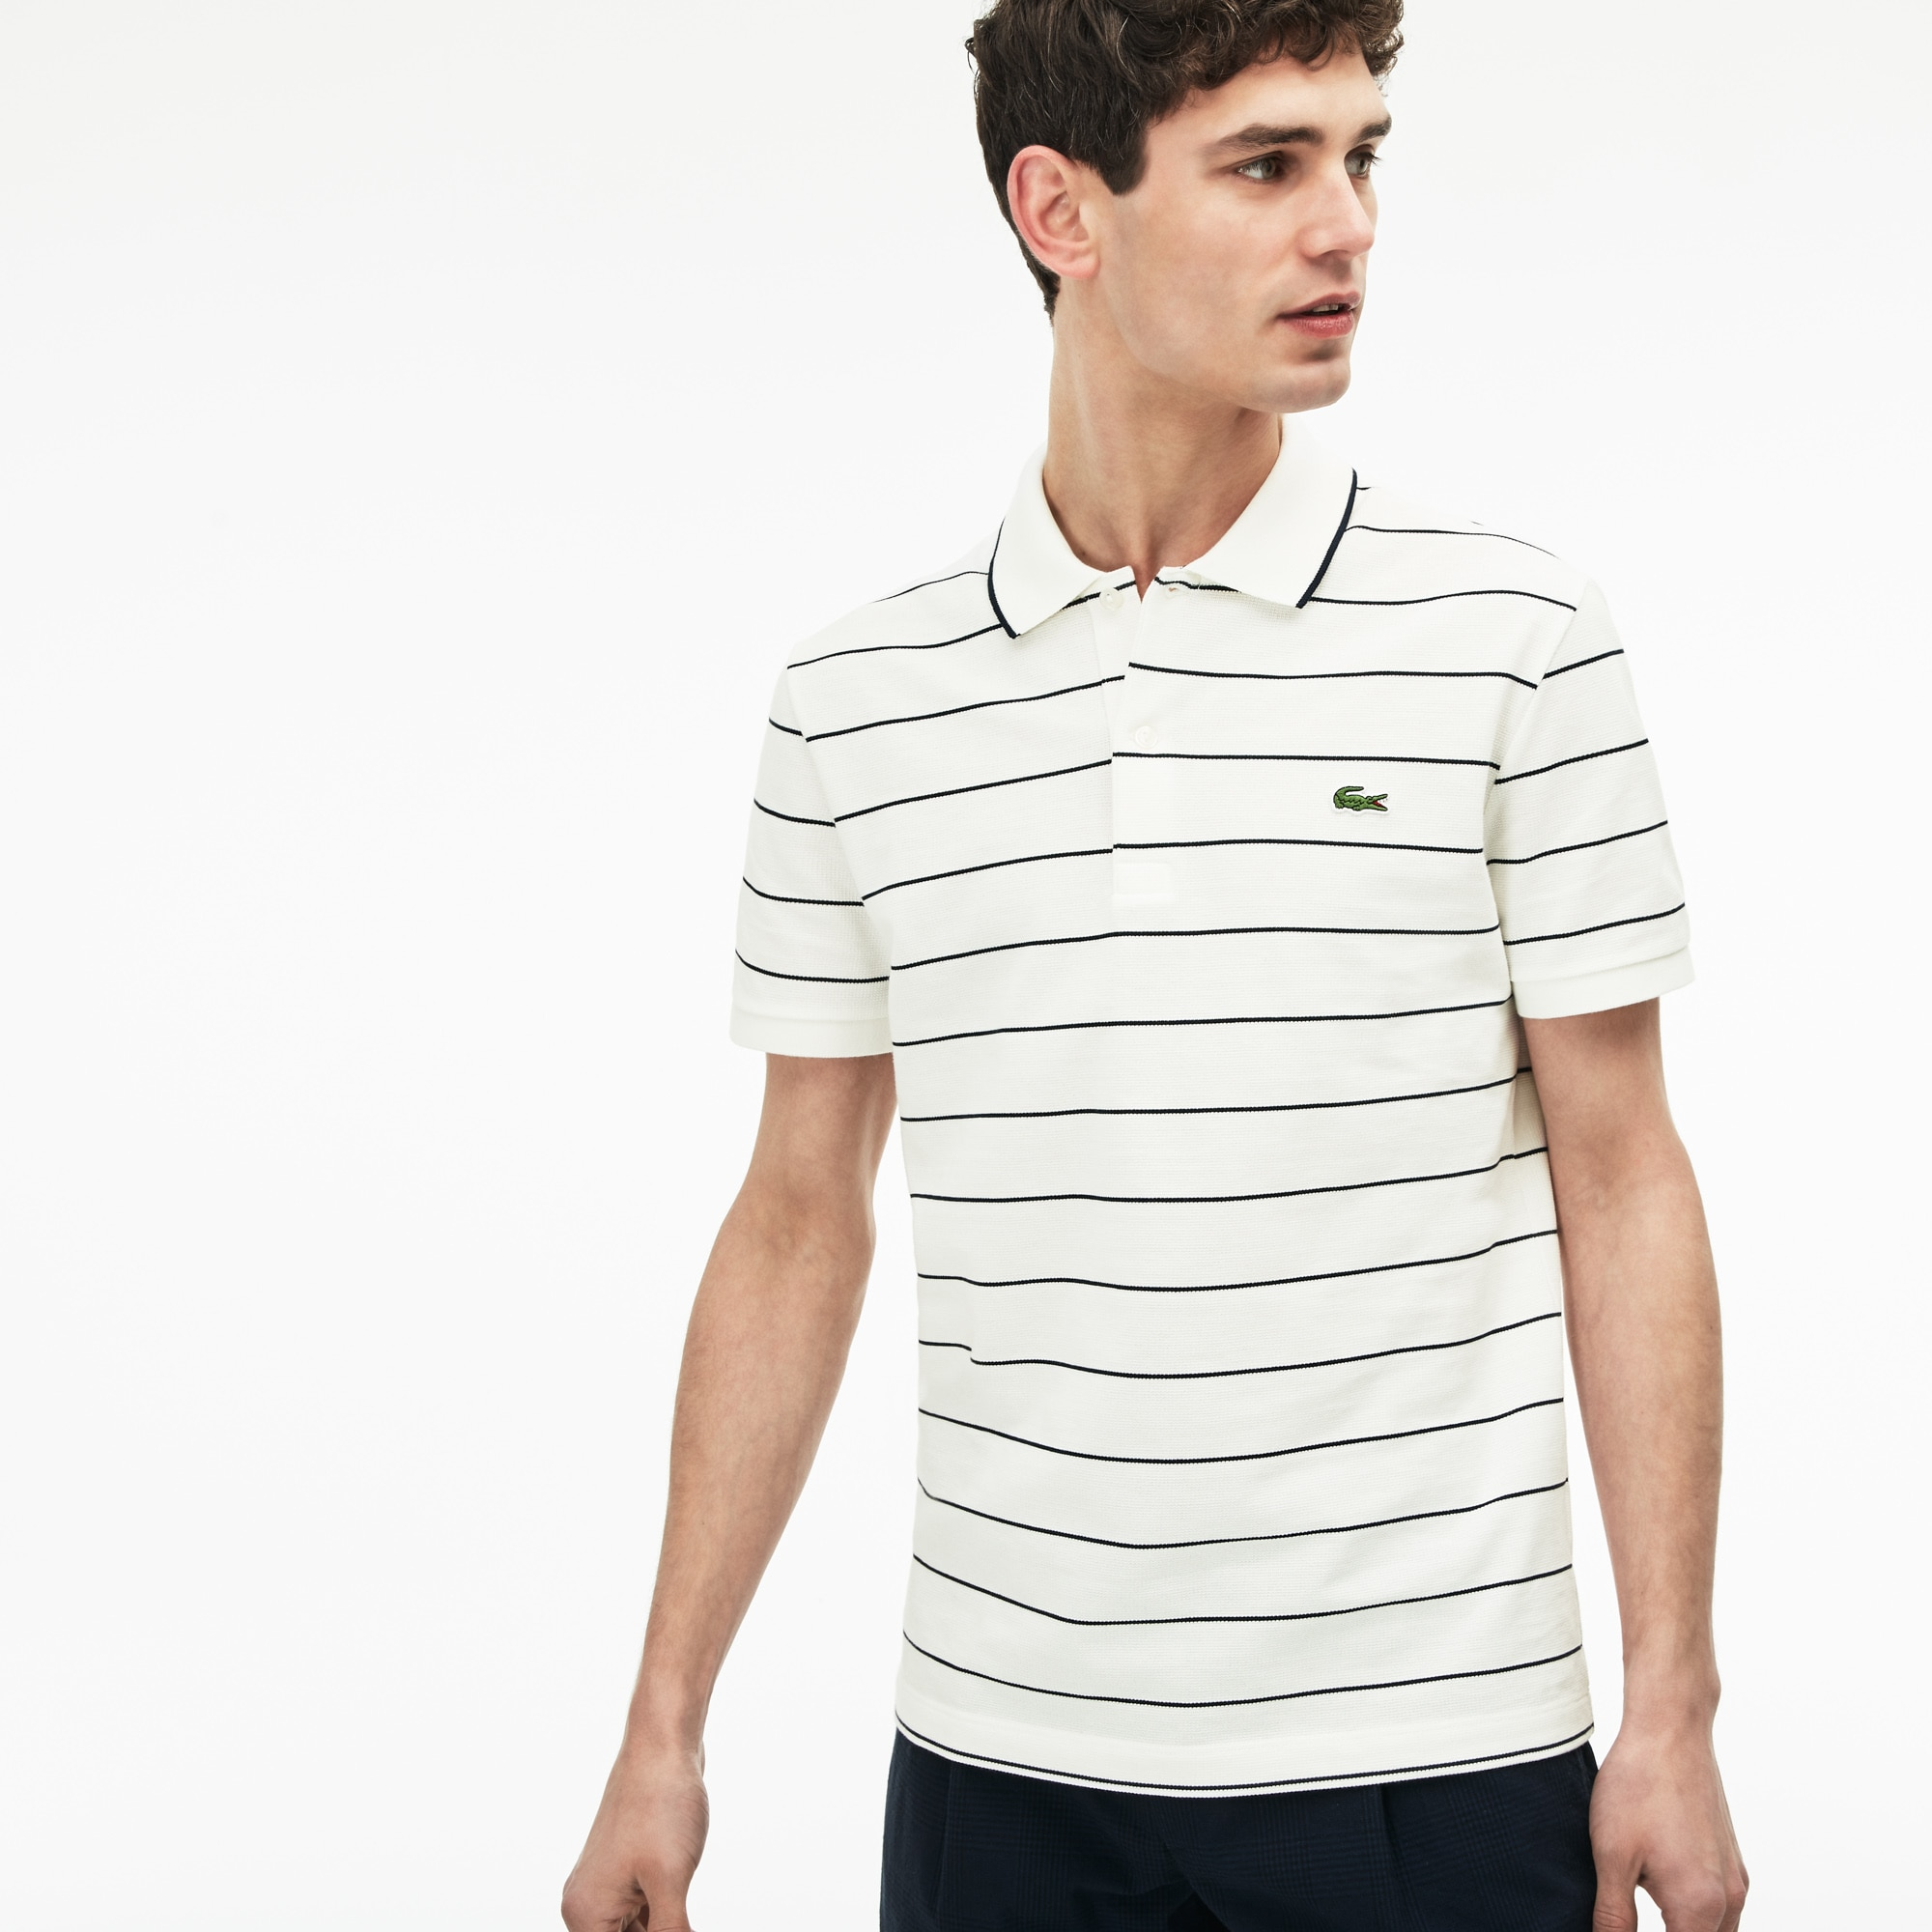 Polo slim fit Lacoste en maille carrée et jersey rayé avec piping